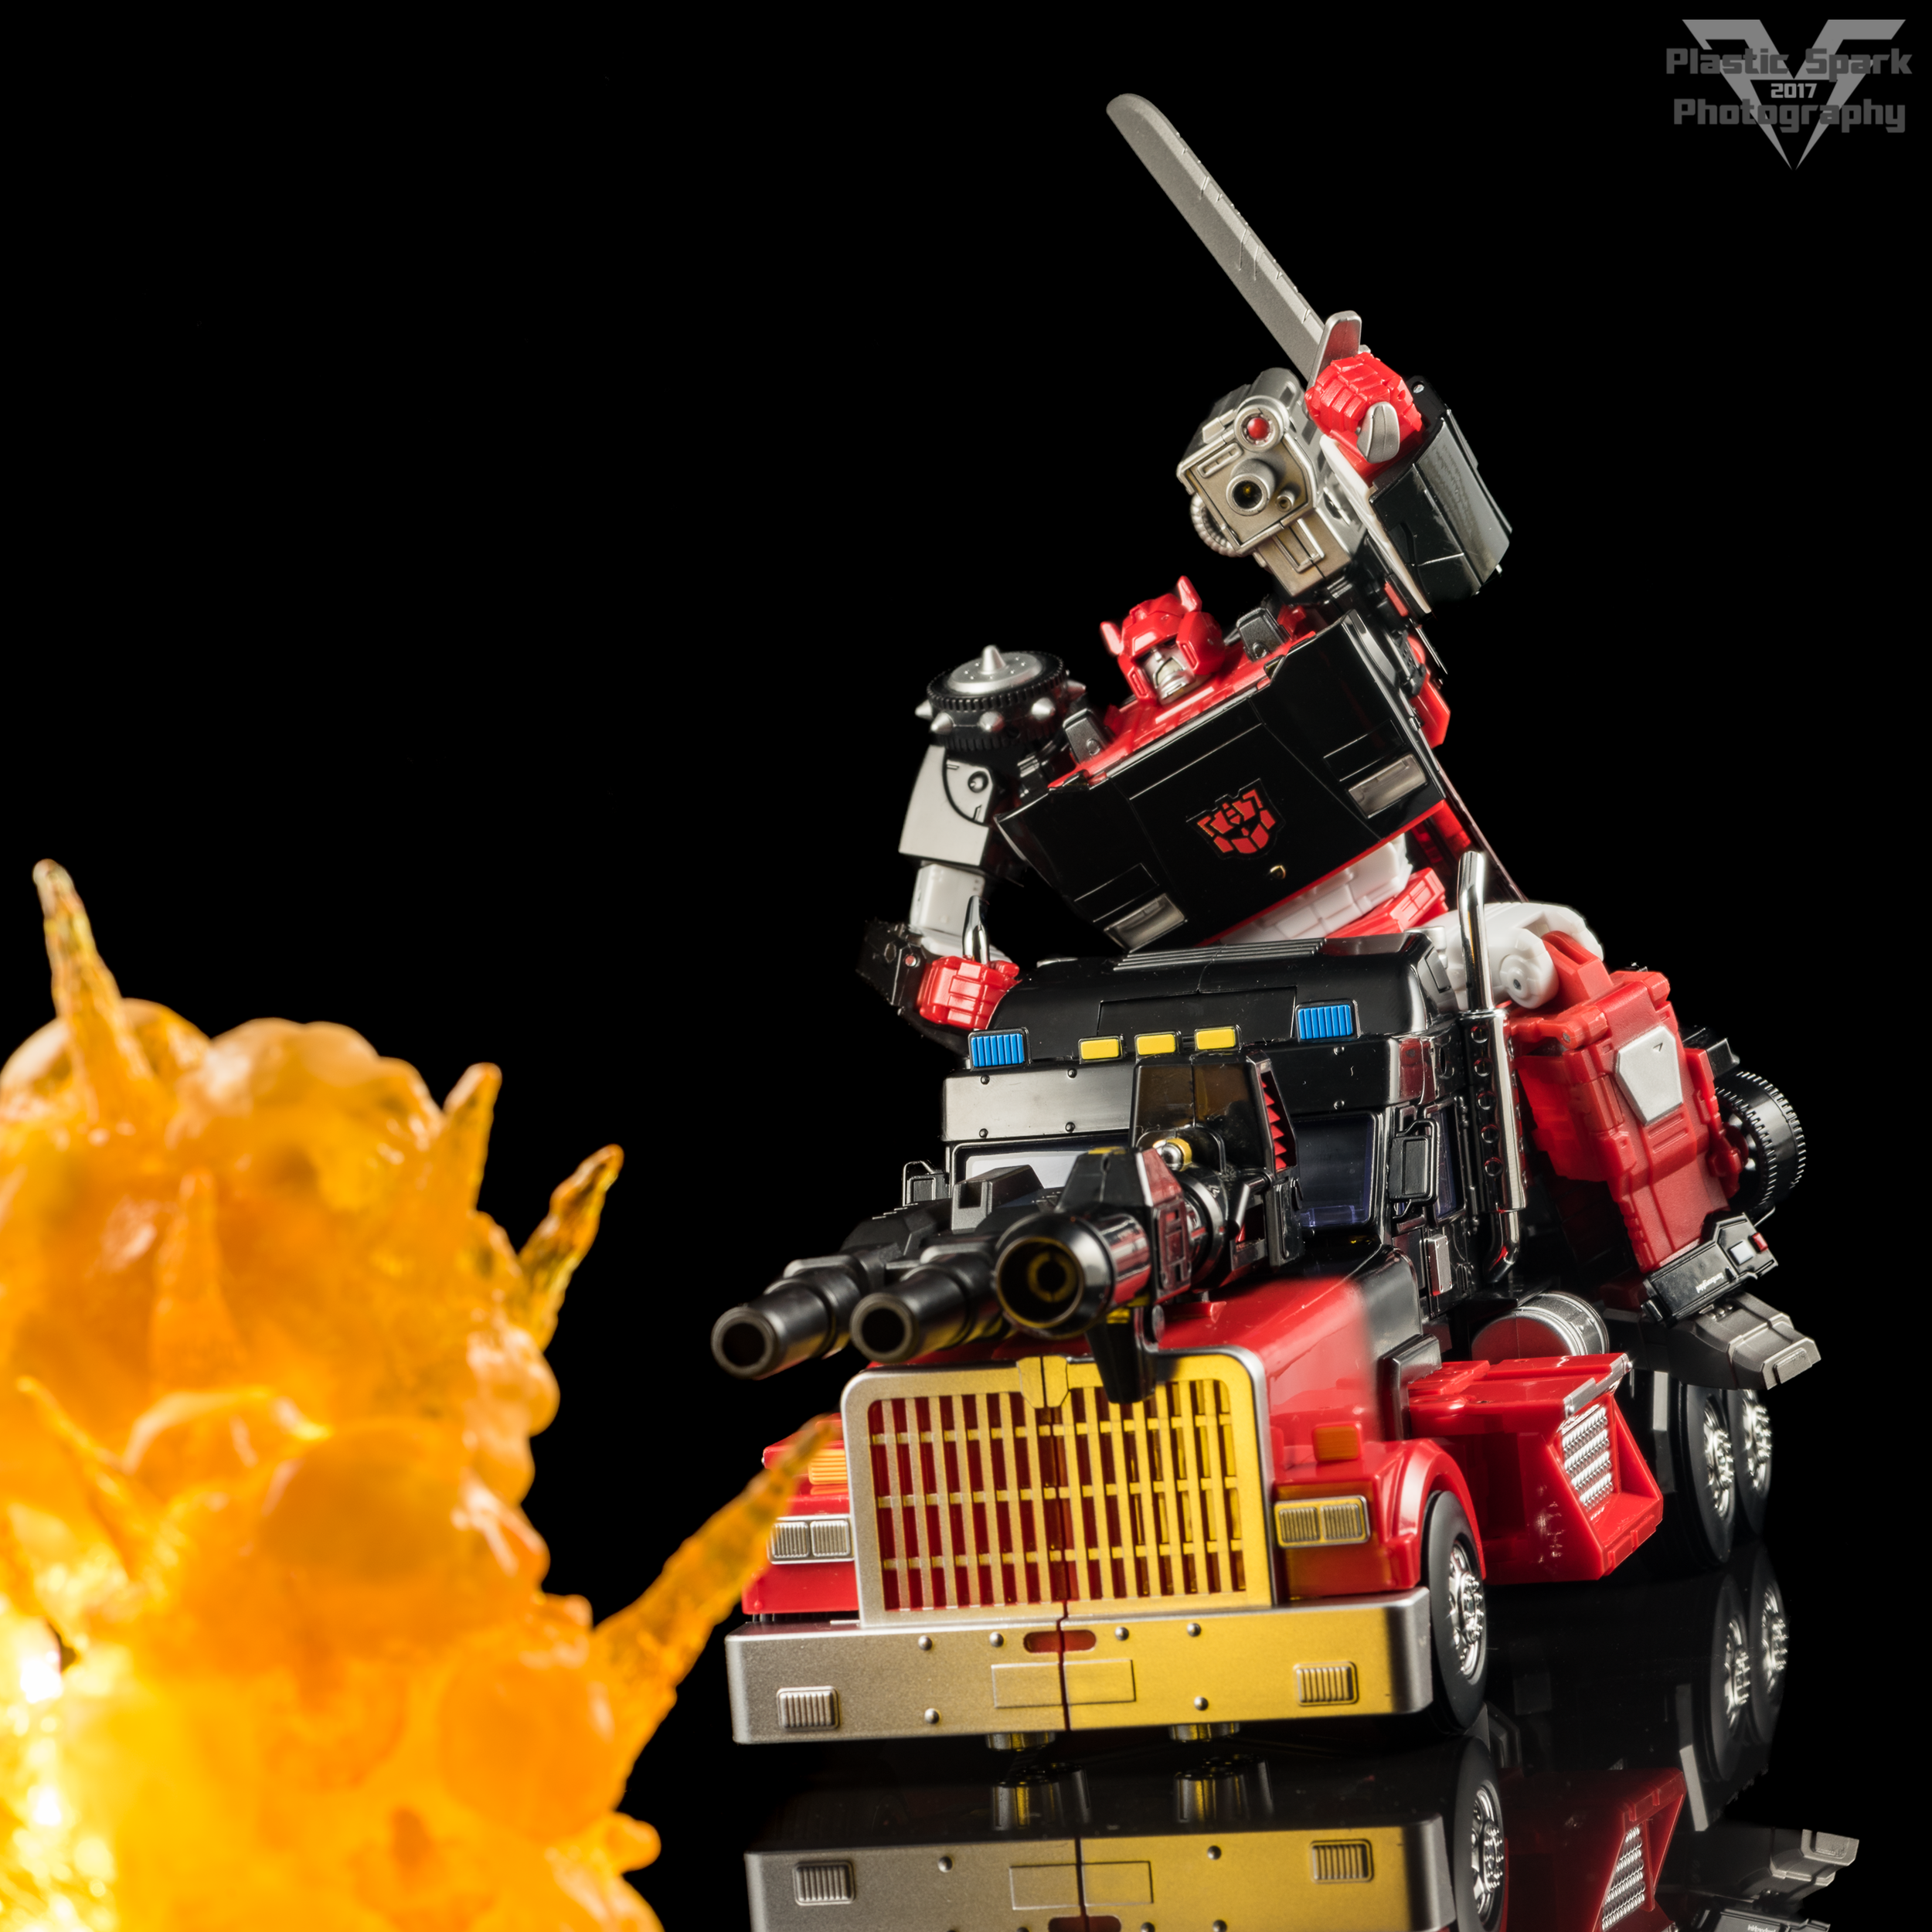 Fans-Hobby-MB-04-Gunfighter-II-(28-of-61).png